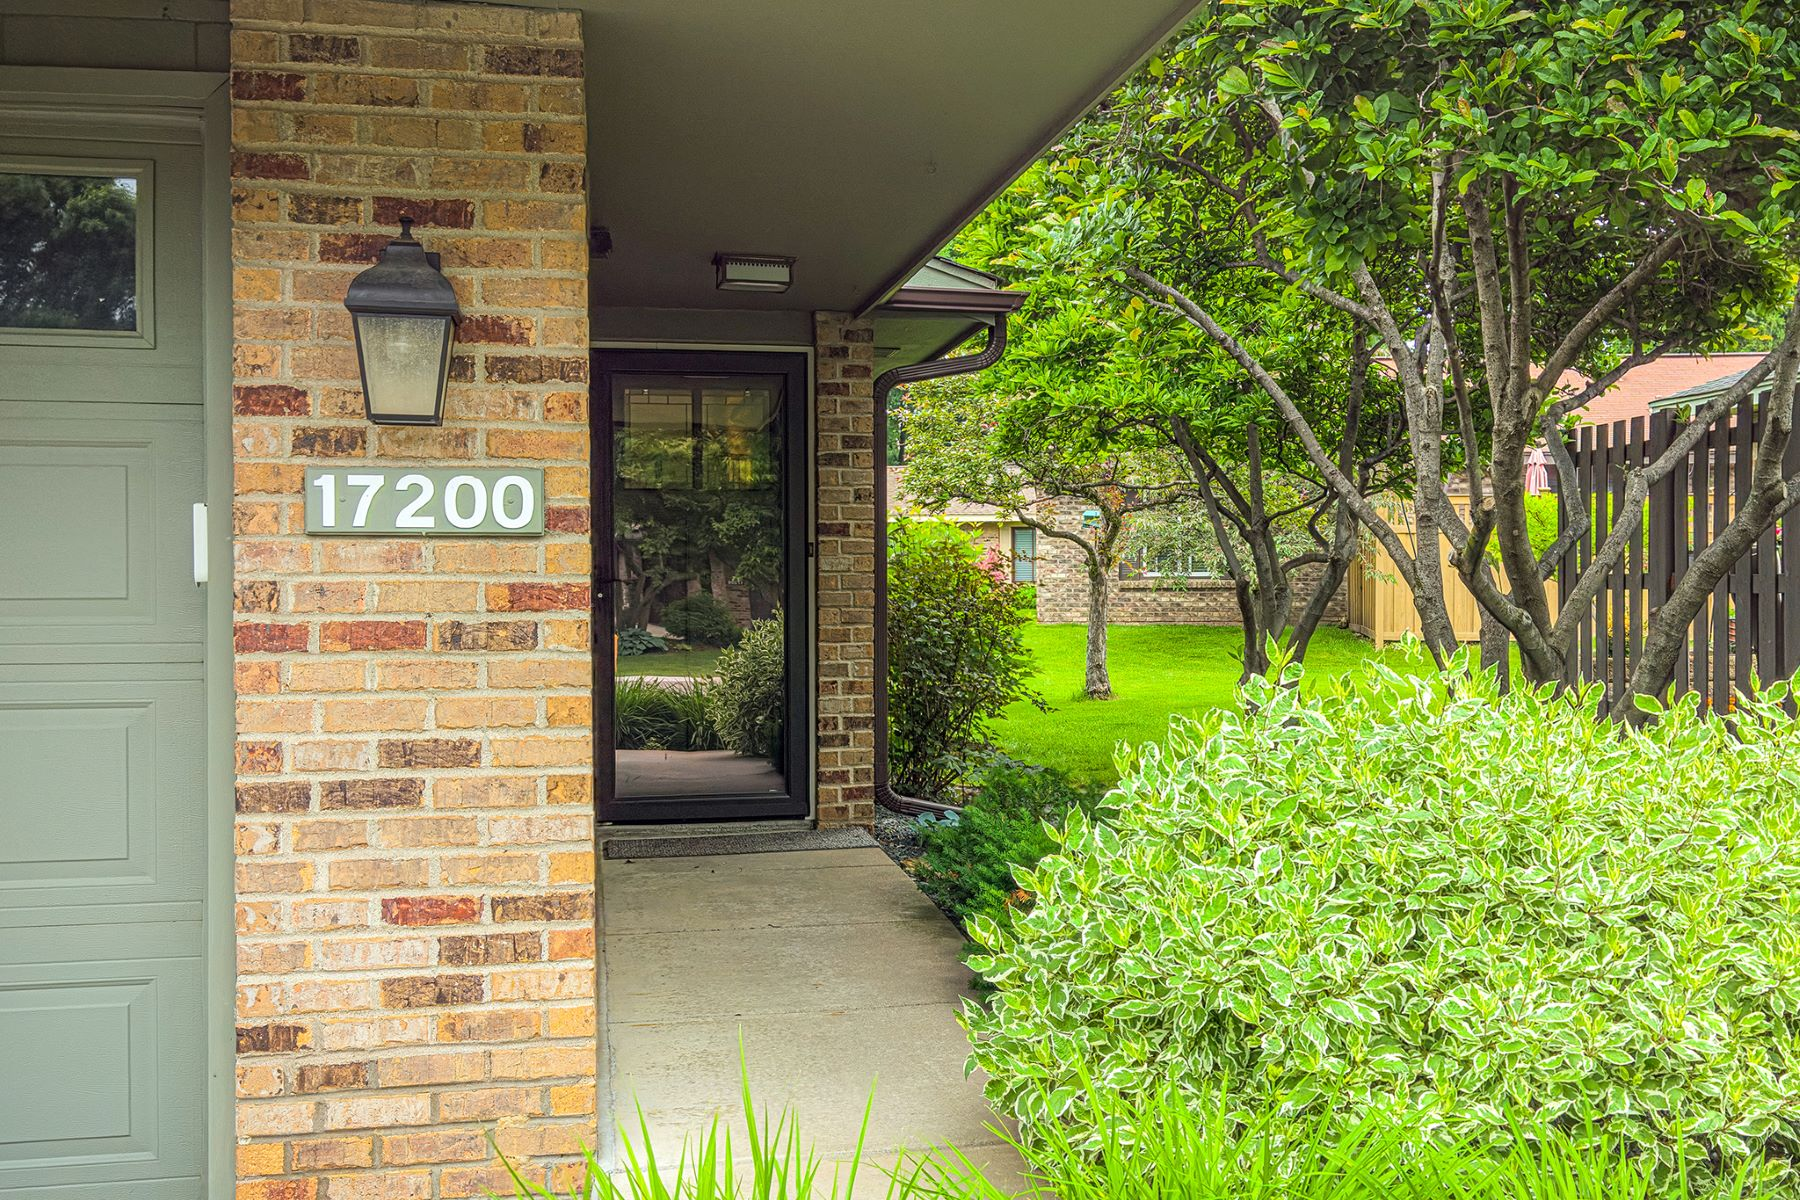 townhouses for Sale at One Level Living at it Best in Kingswood Farms 17200 3rd Avenue N. Plymouth, Minnesota 55447 United States